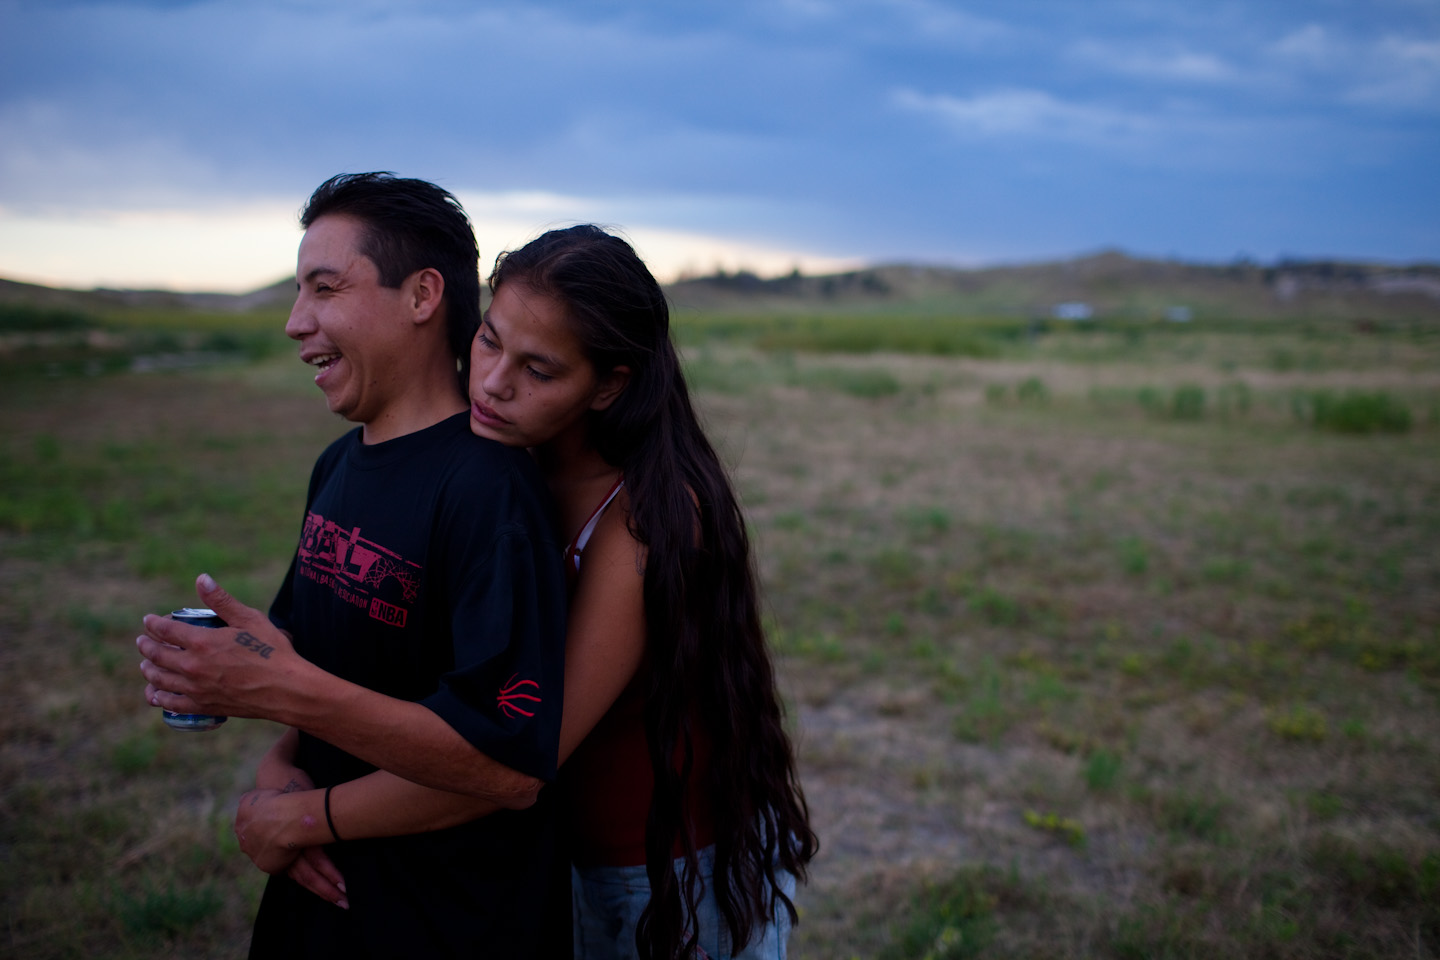 Rich Lone Elk, 24, a member of the North Side Tre Tre Gangsta' Crips, hugs one of his girlfriends, Alexis Oxendine at their house in Pine Ridge, South Dakota.  (Photo by Matthew Williams/ZUMA Press)